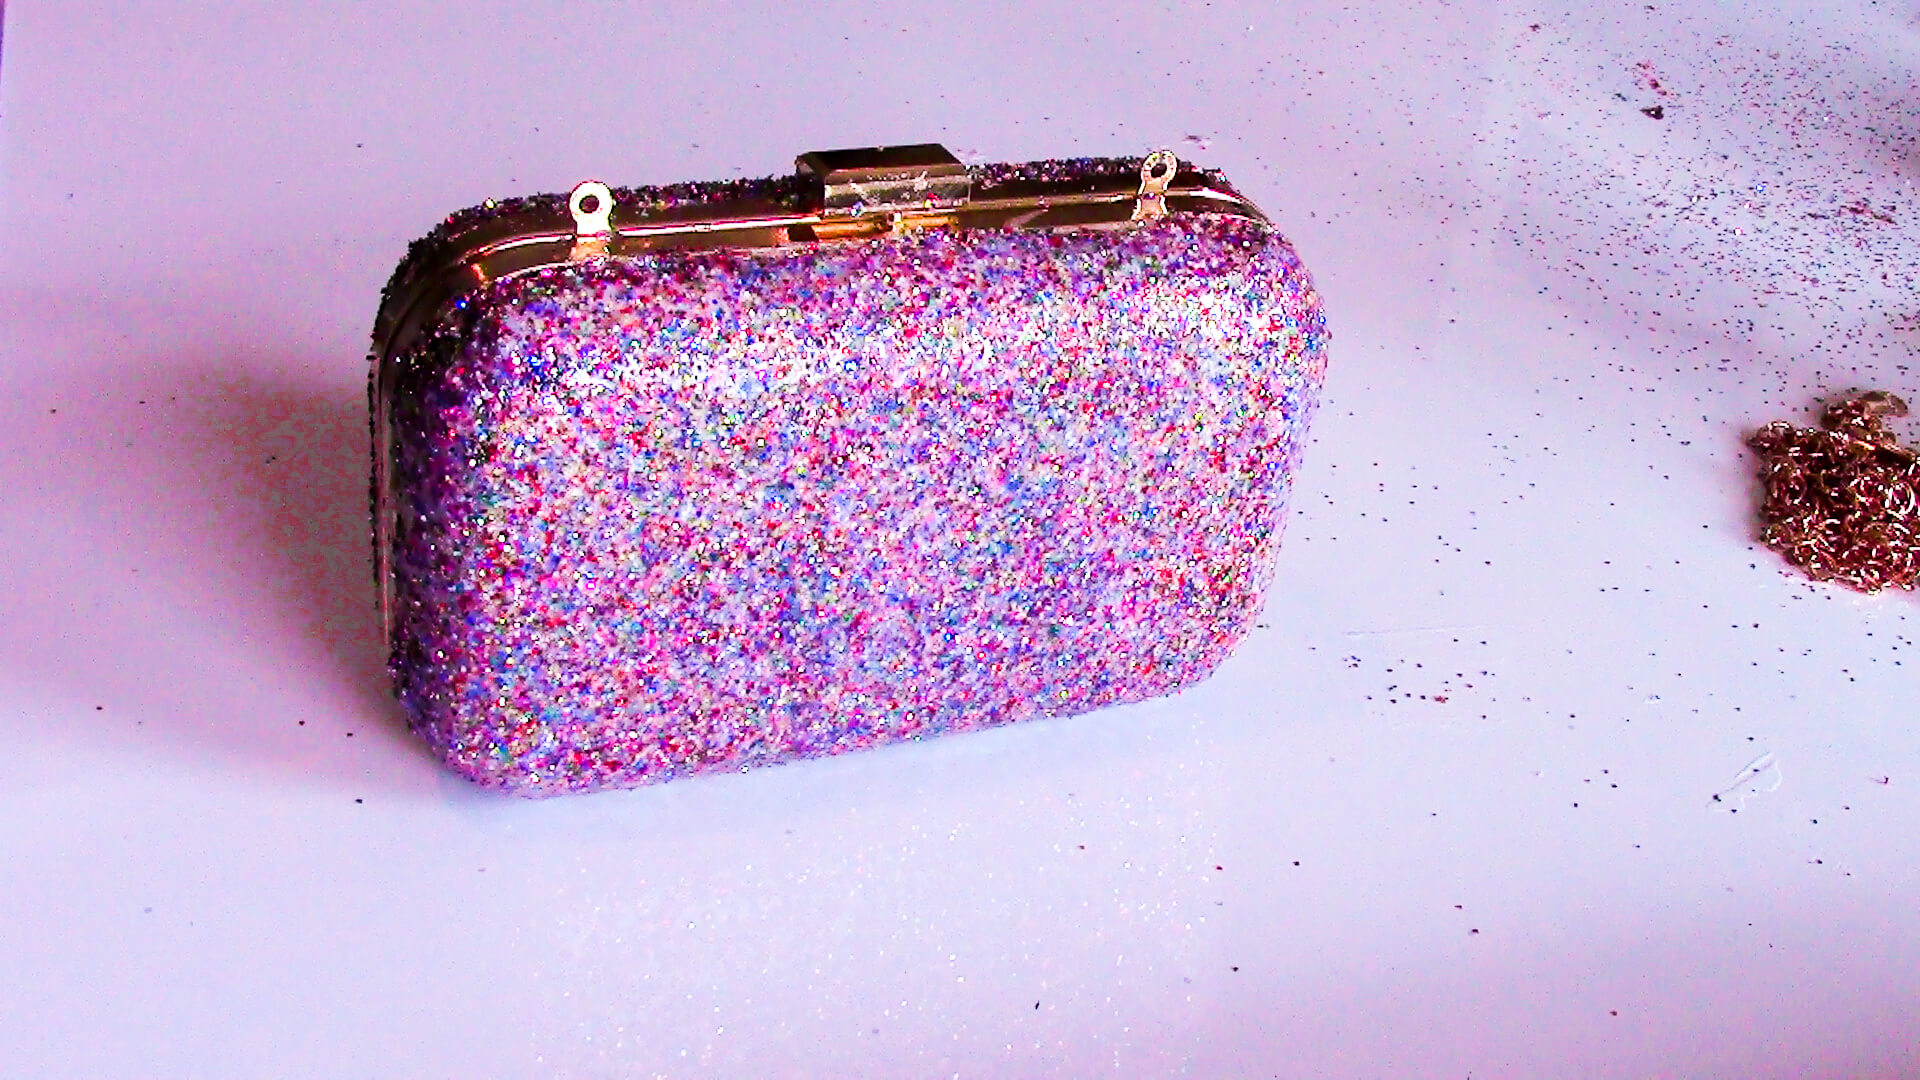 Mod Podge Glitter onto clutch